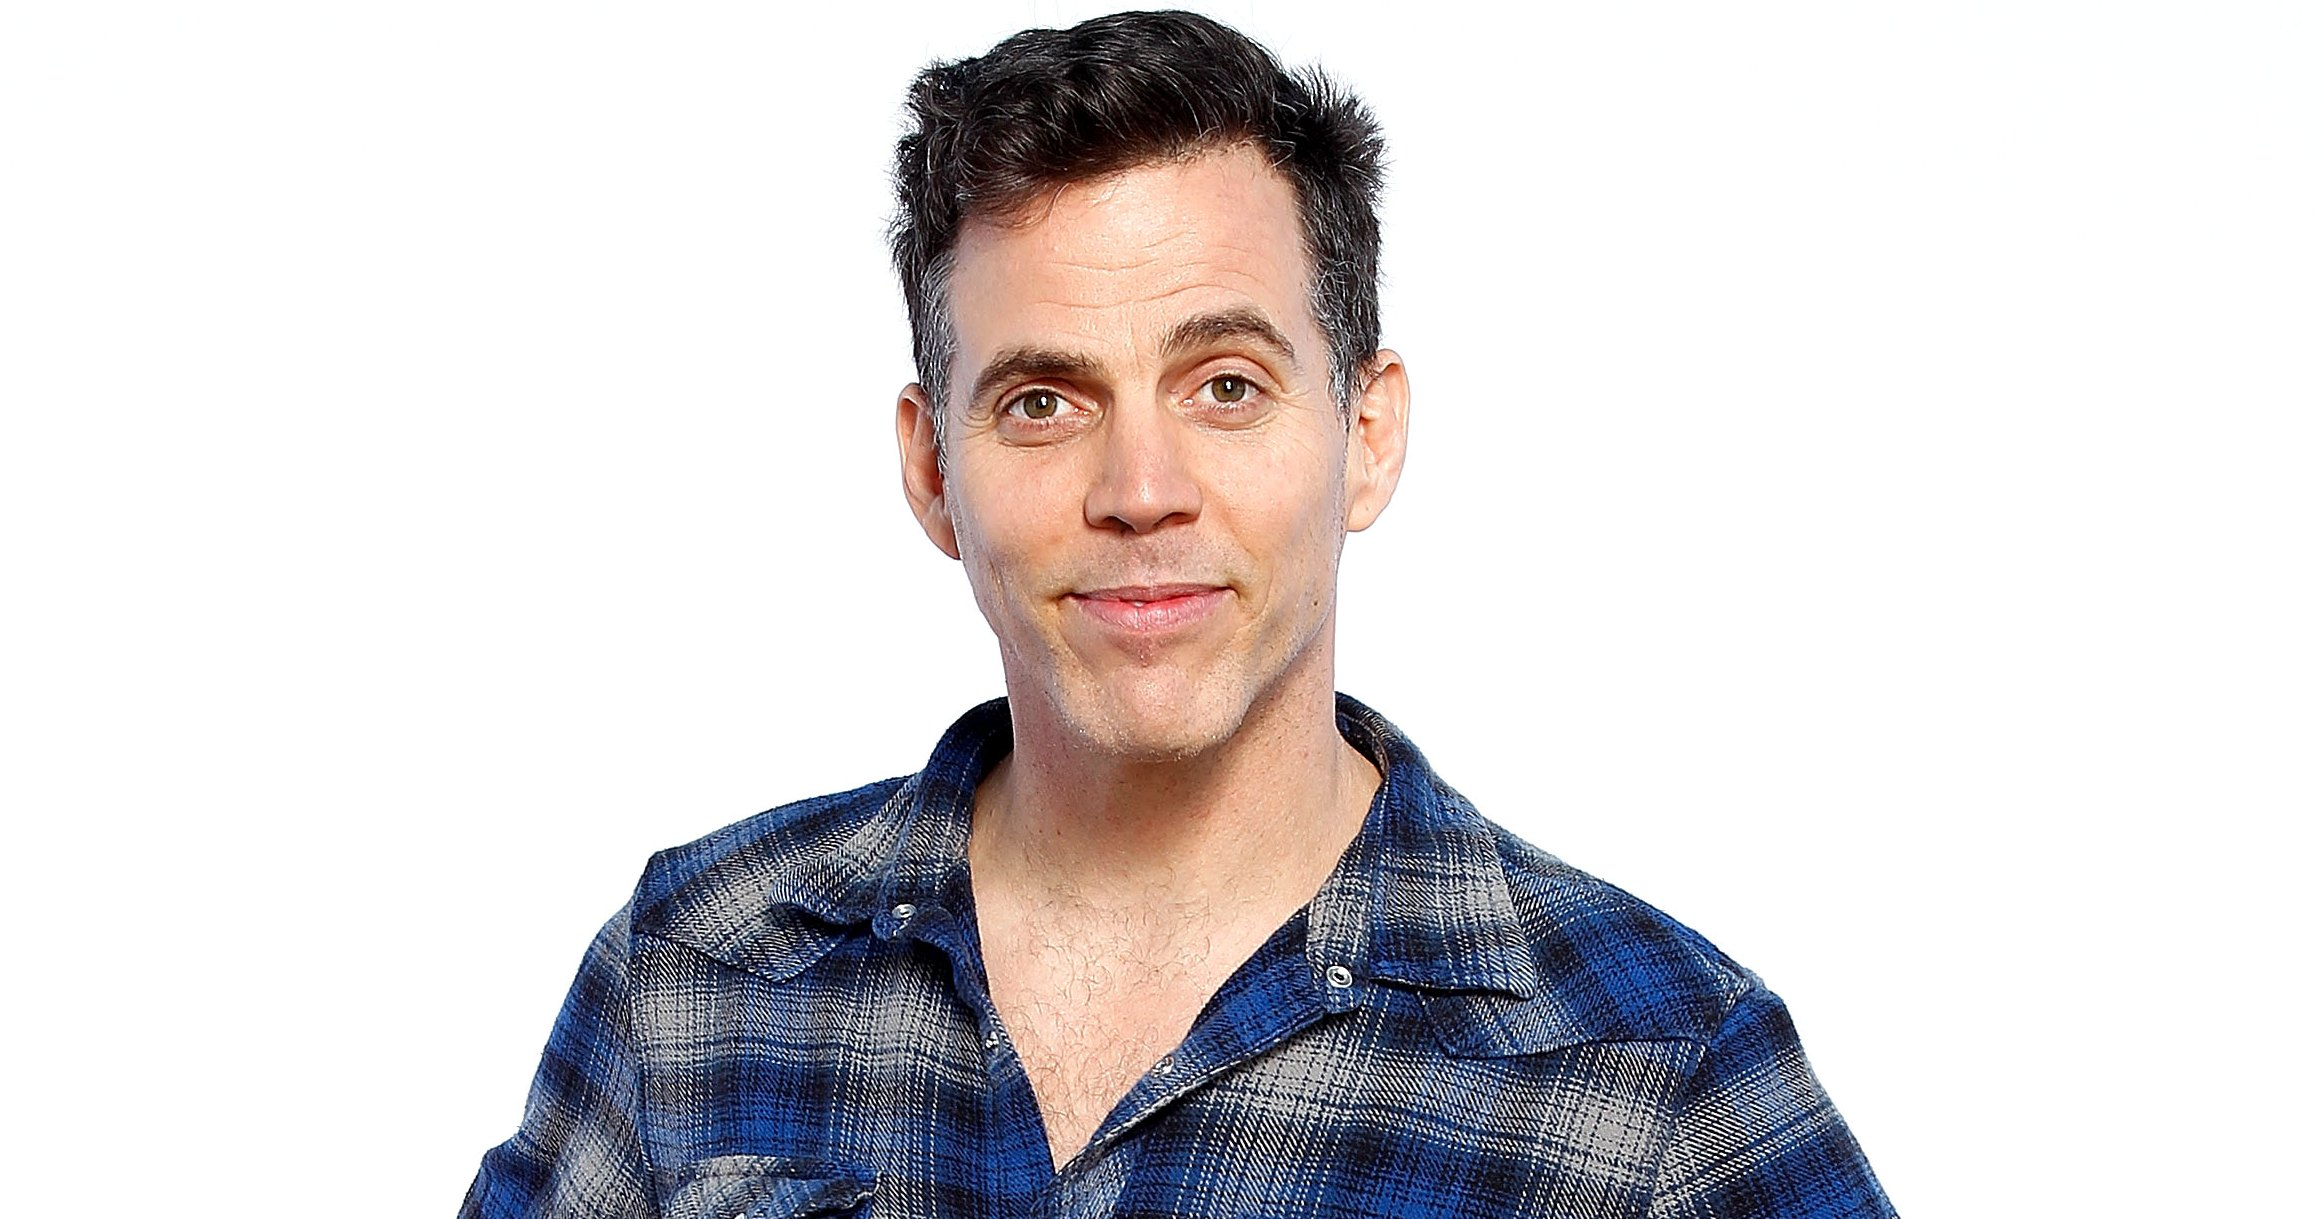 Steve-O Talks Snorting Cocaine Tainted With HIV-Positive Blood: 'This Is How Desperate and Pathetic I Was'